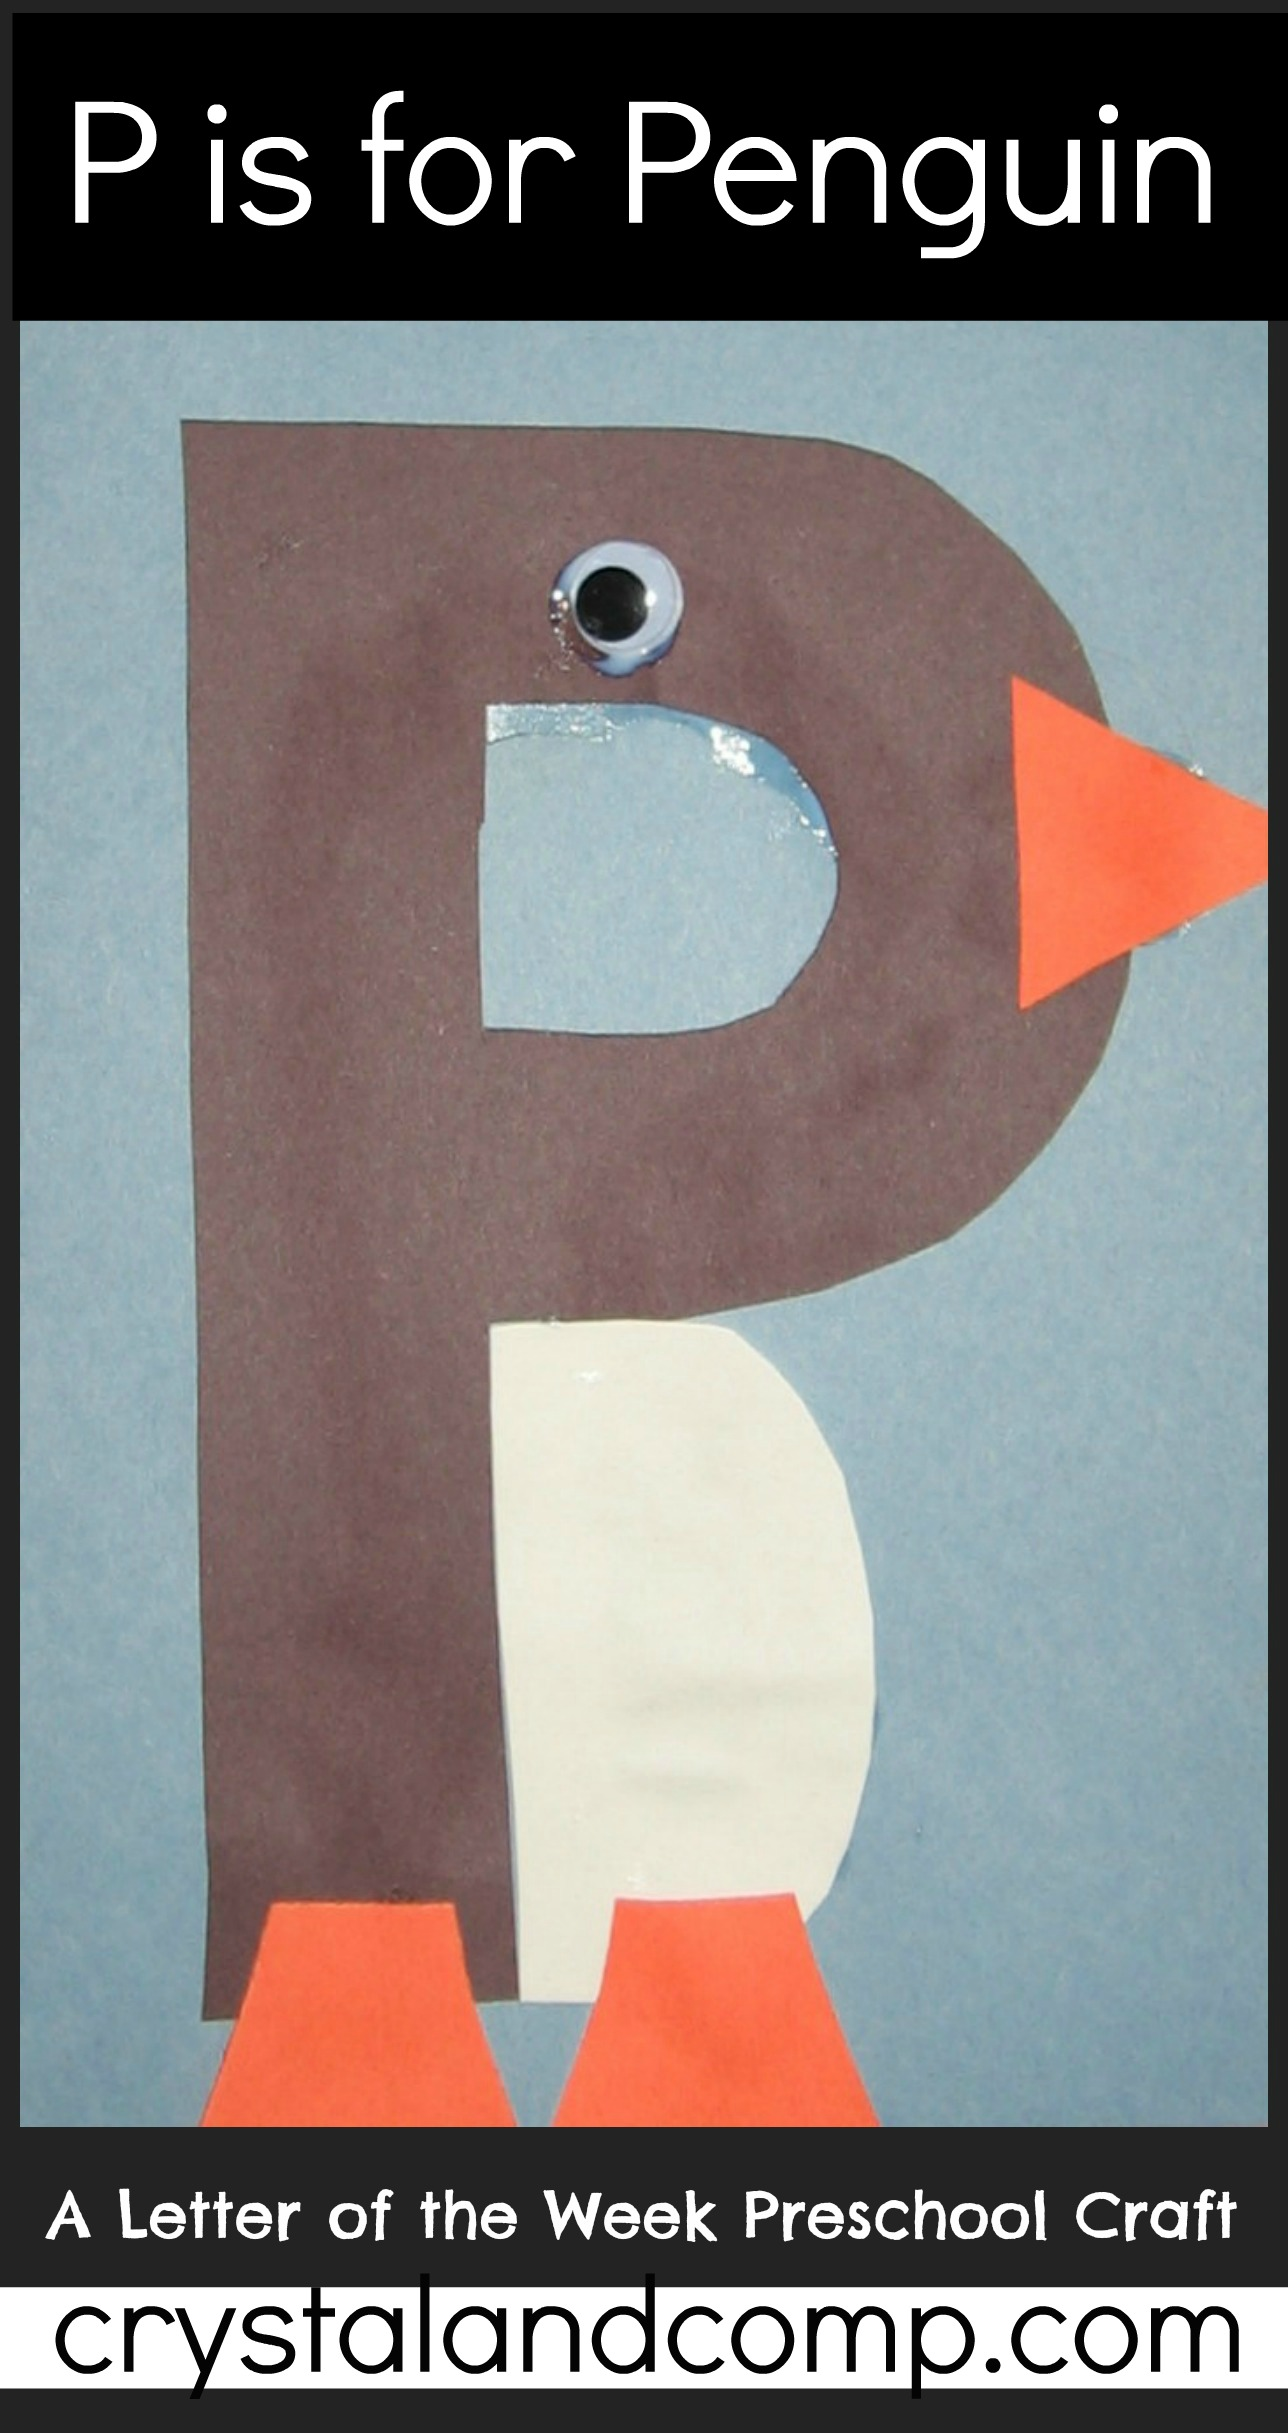 letter of the week crafts: p is for penguin